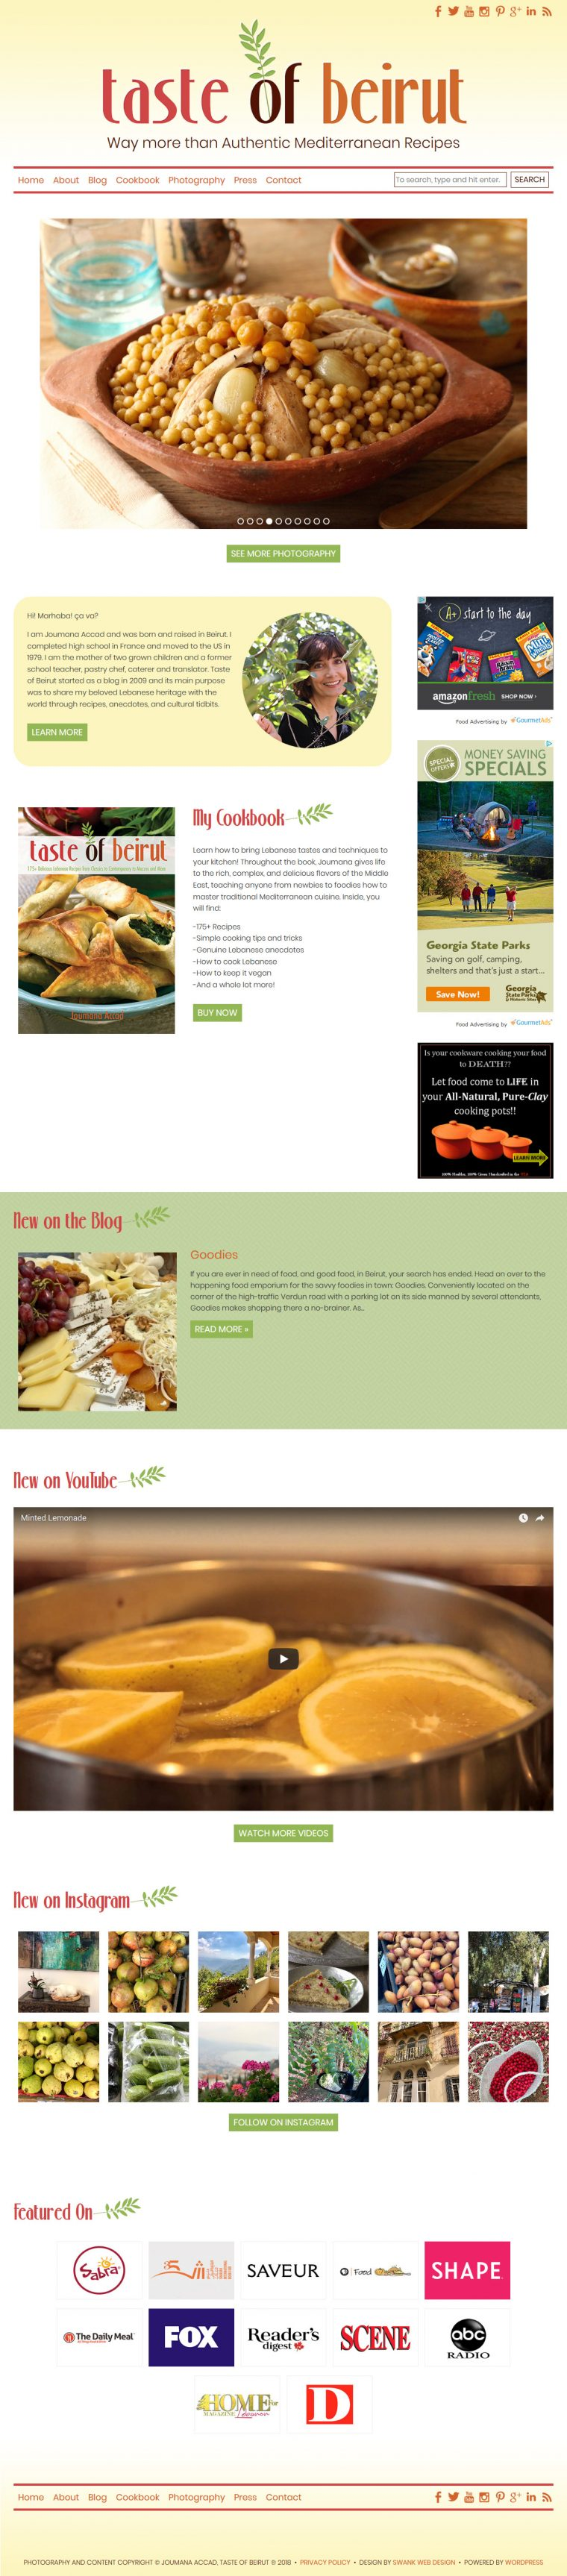 Website Design for Taste of Beirut by Swank Web Design